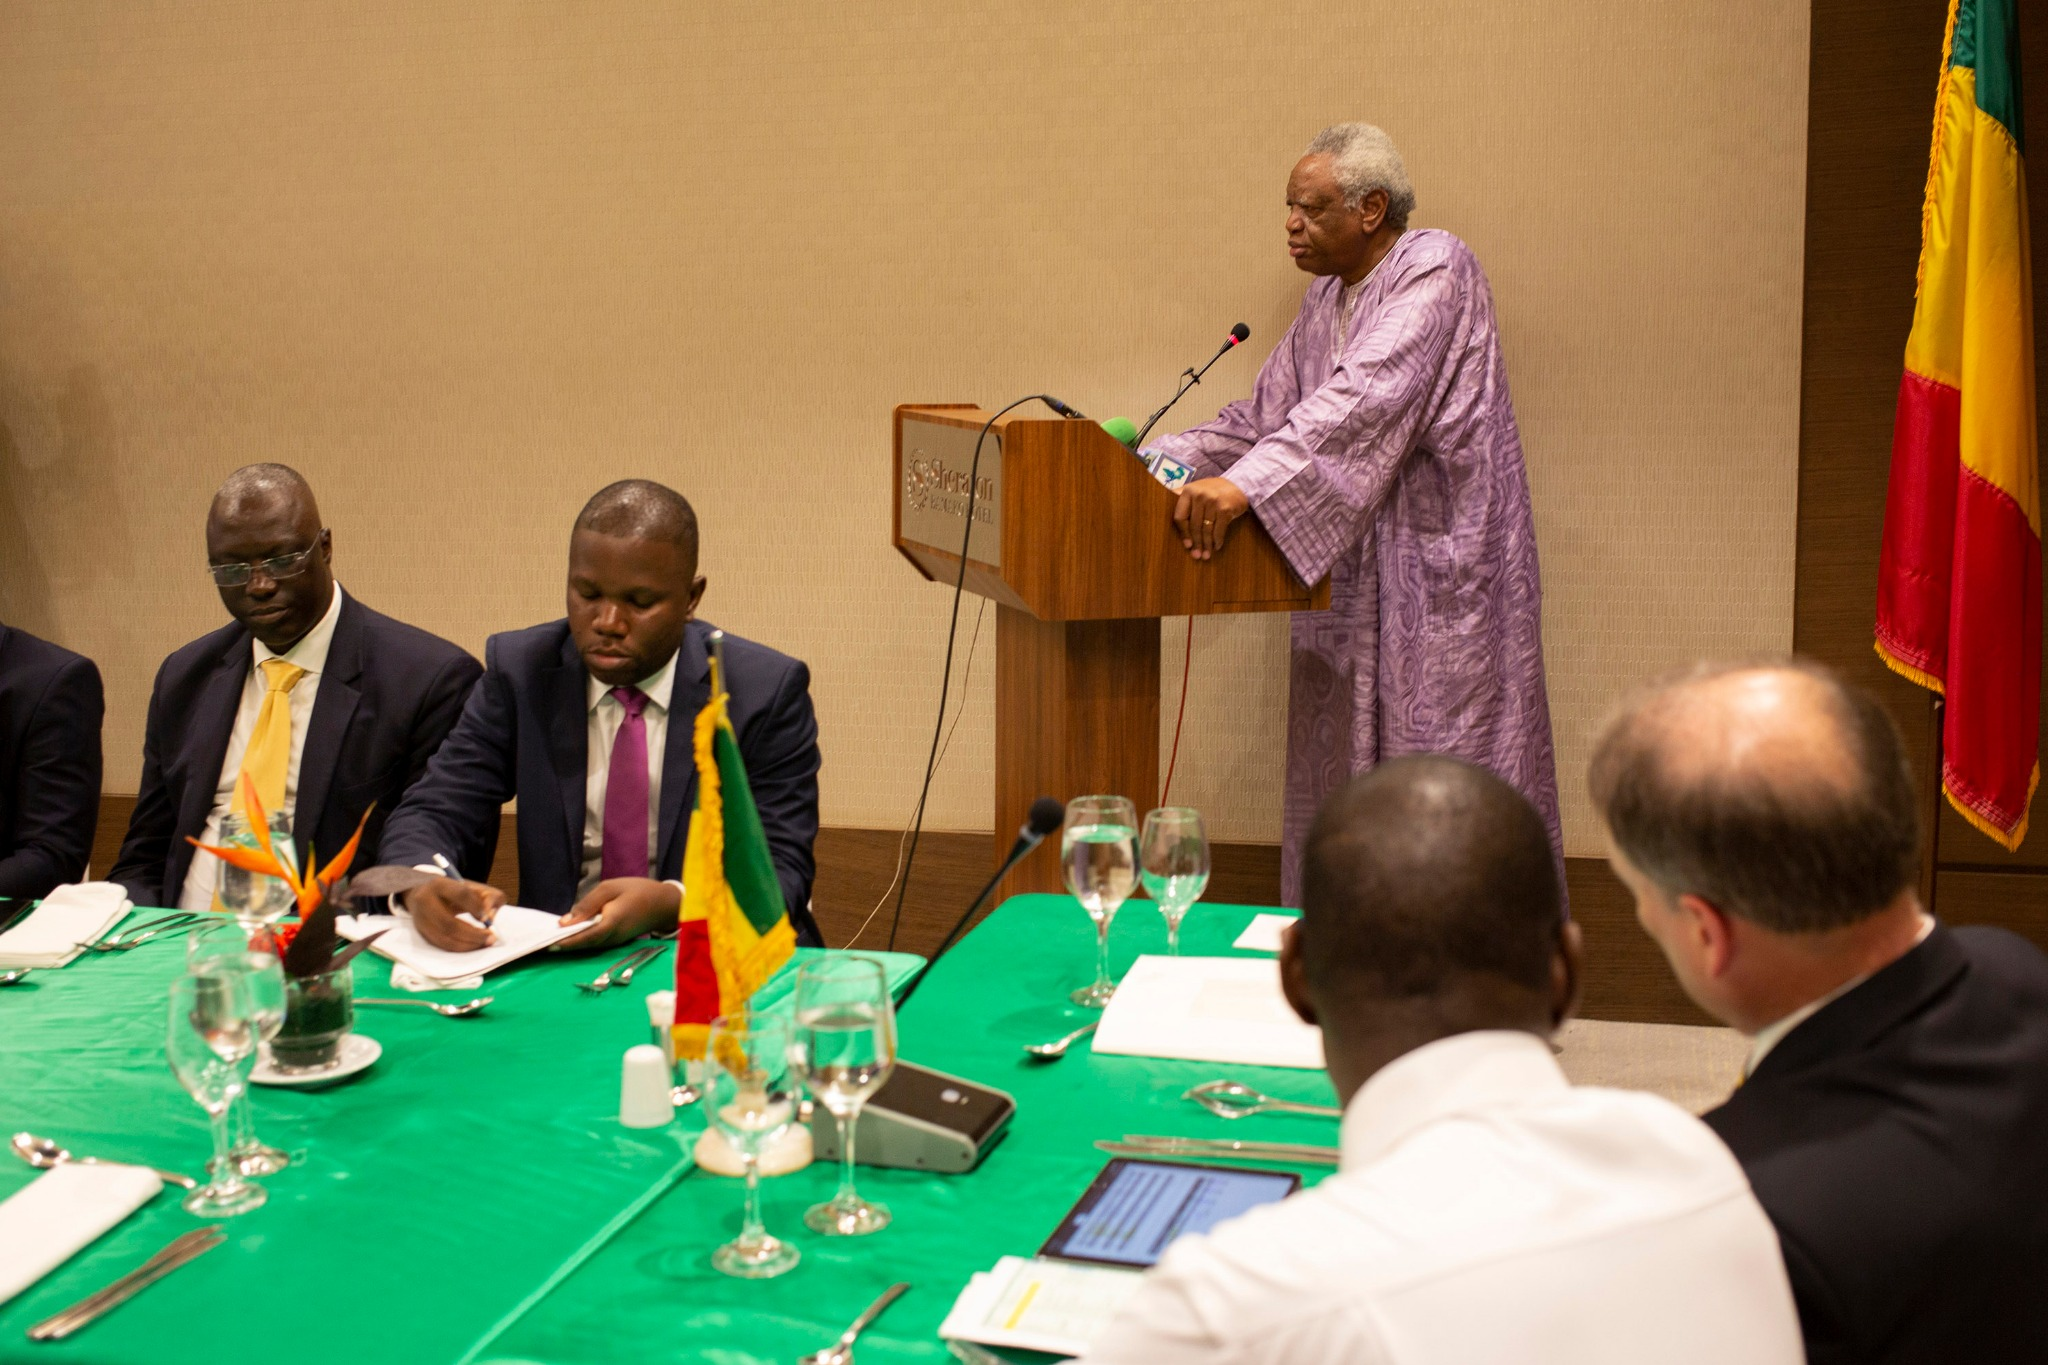 Daniel Thera, Minister of Religious Activities, speaks during the recognition meeting of The Church of Jesus Christ of Latter-day Saints on Sept. 12, 2019 in Bamako, Mali.